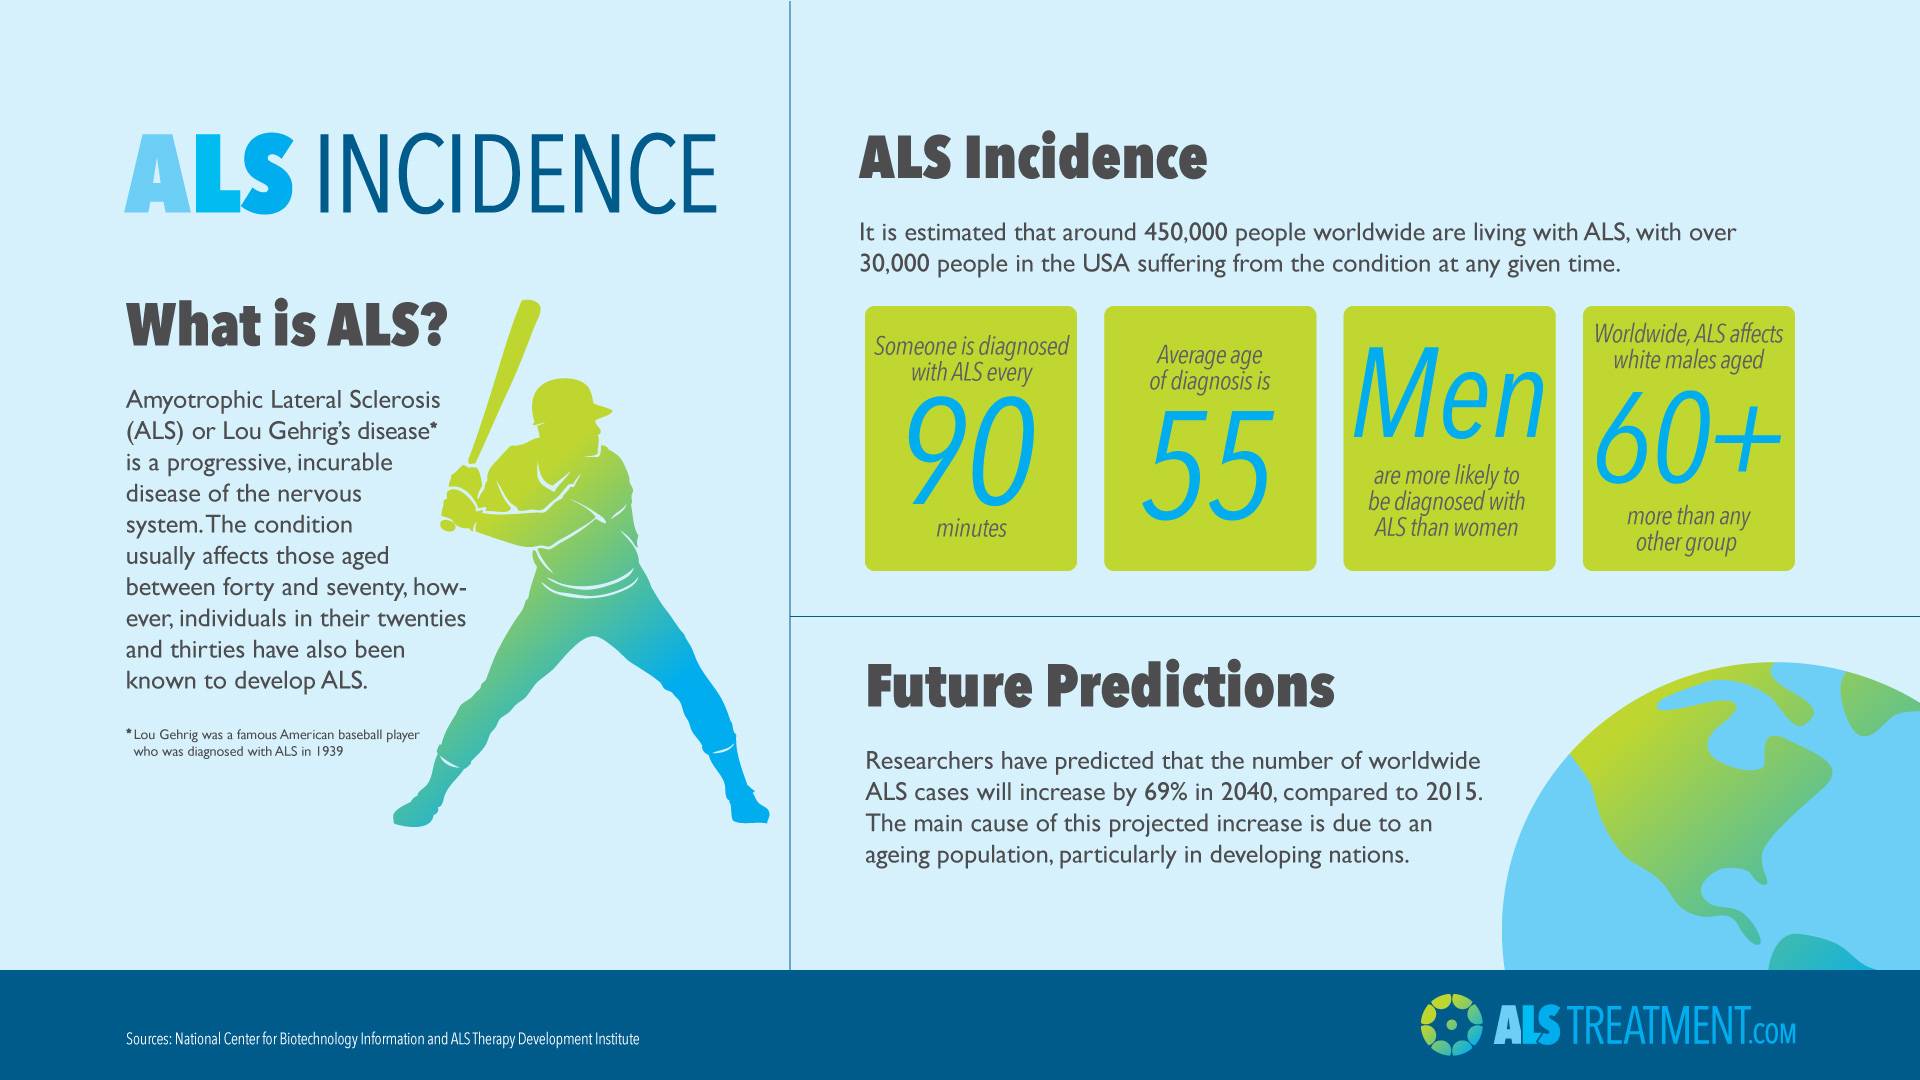 ALS incidence infographic